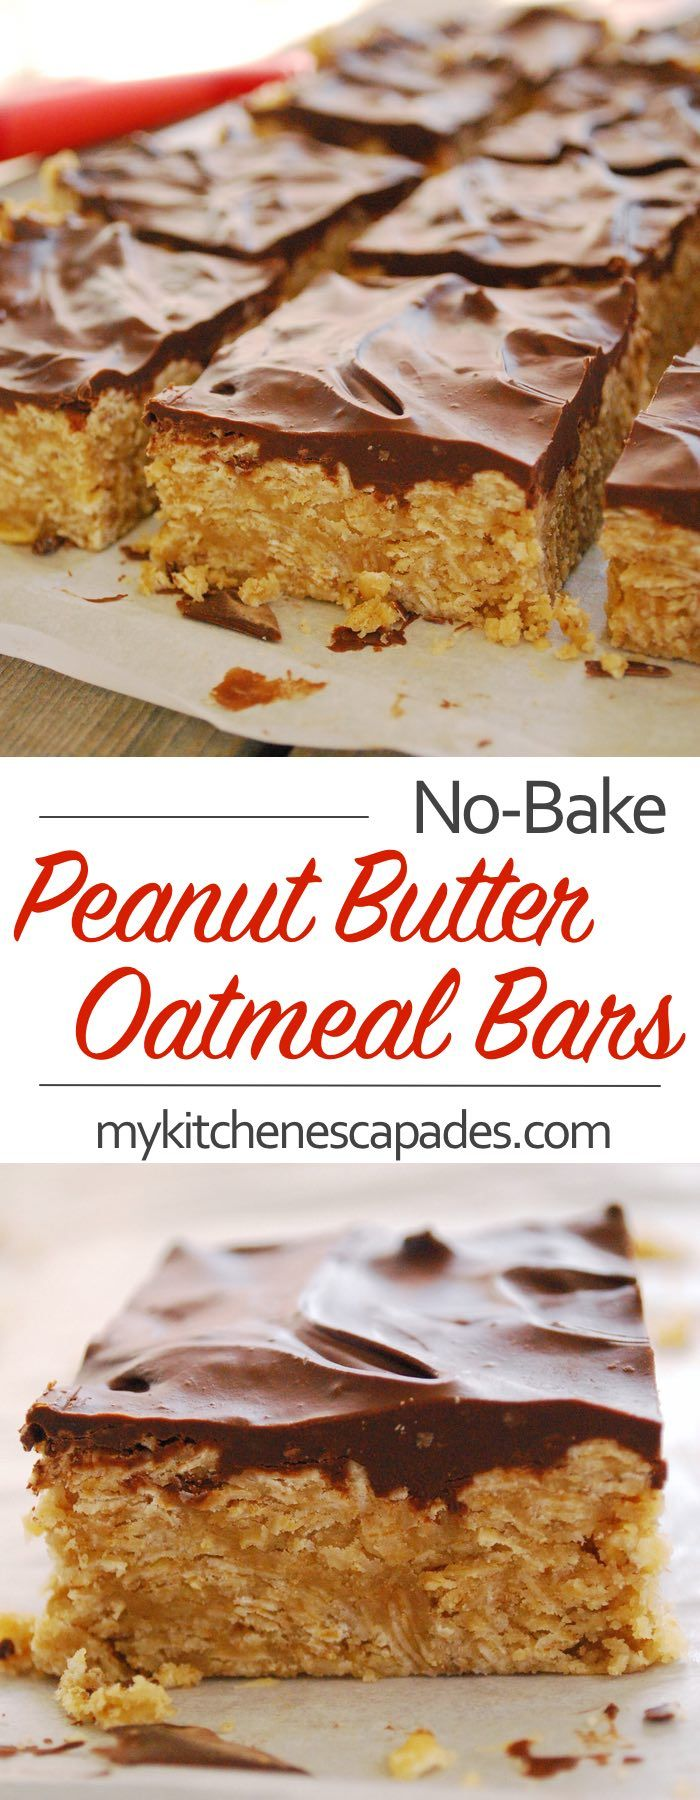 These no-bake bars are so simple to make. Loaded with oats, peanut butter and topped with melted chocolate. The recipe is ready in minutes and the best